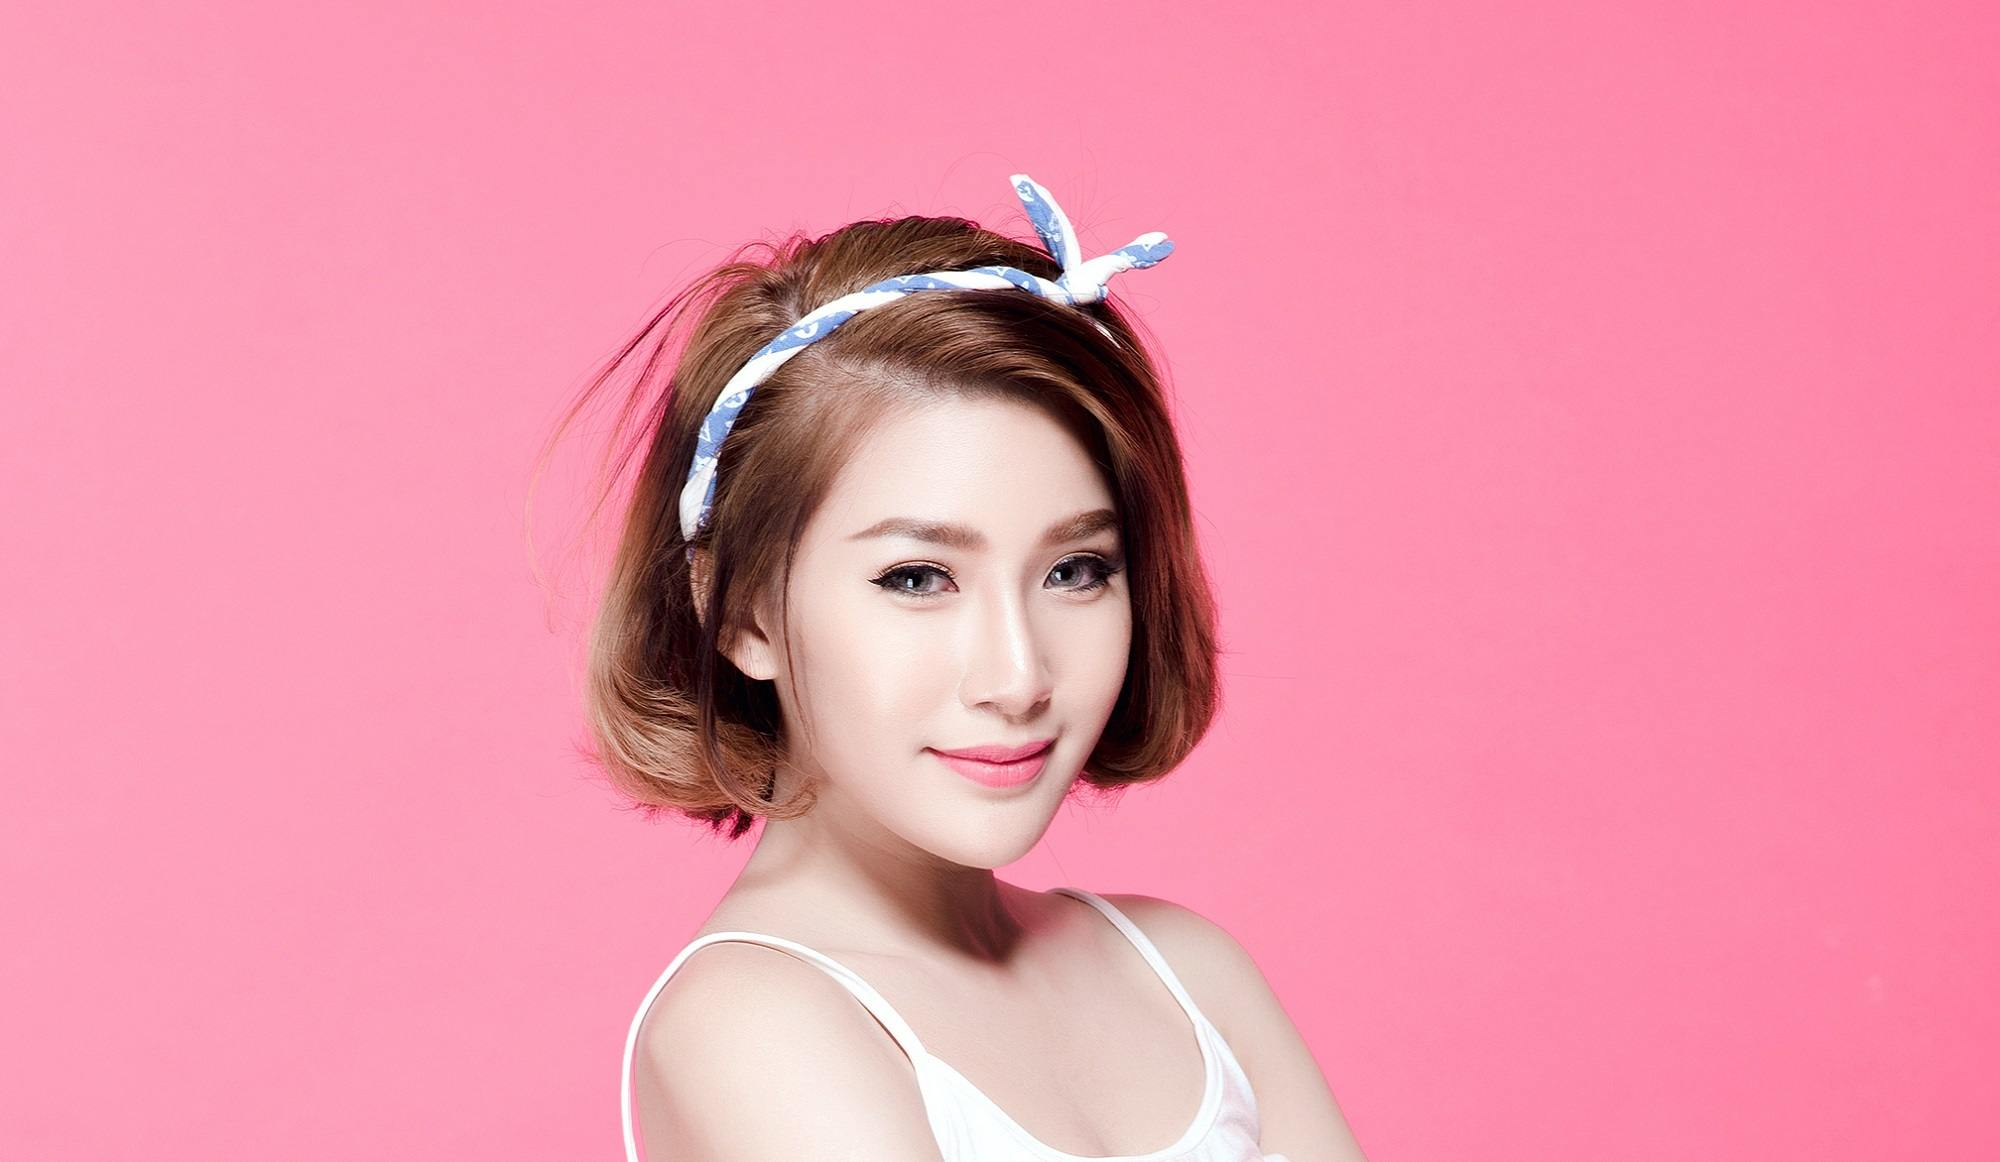 Chin length hairstyles: Closeup shot of Asian woman wearing white thin-strapped top with brown short hair and white headband standing against pink background